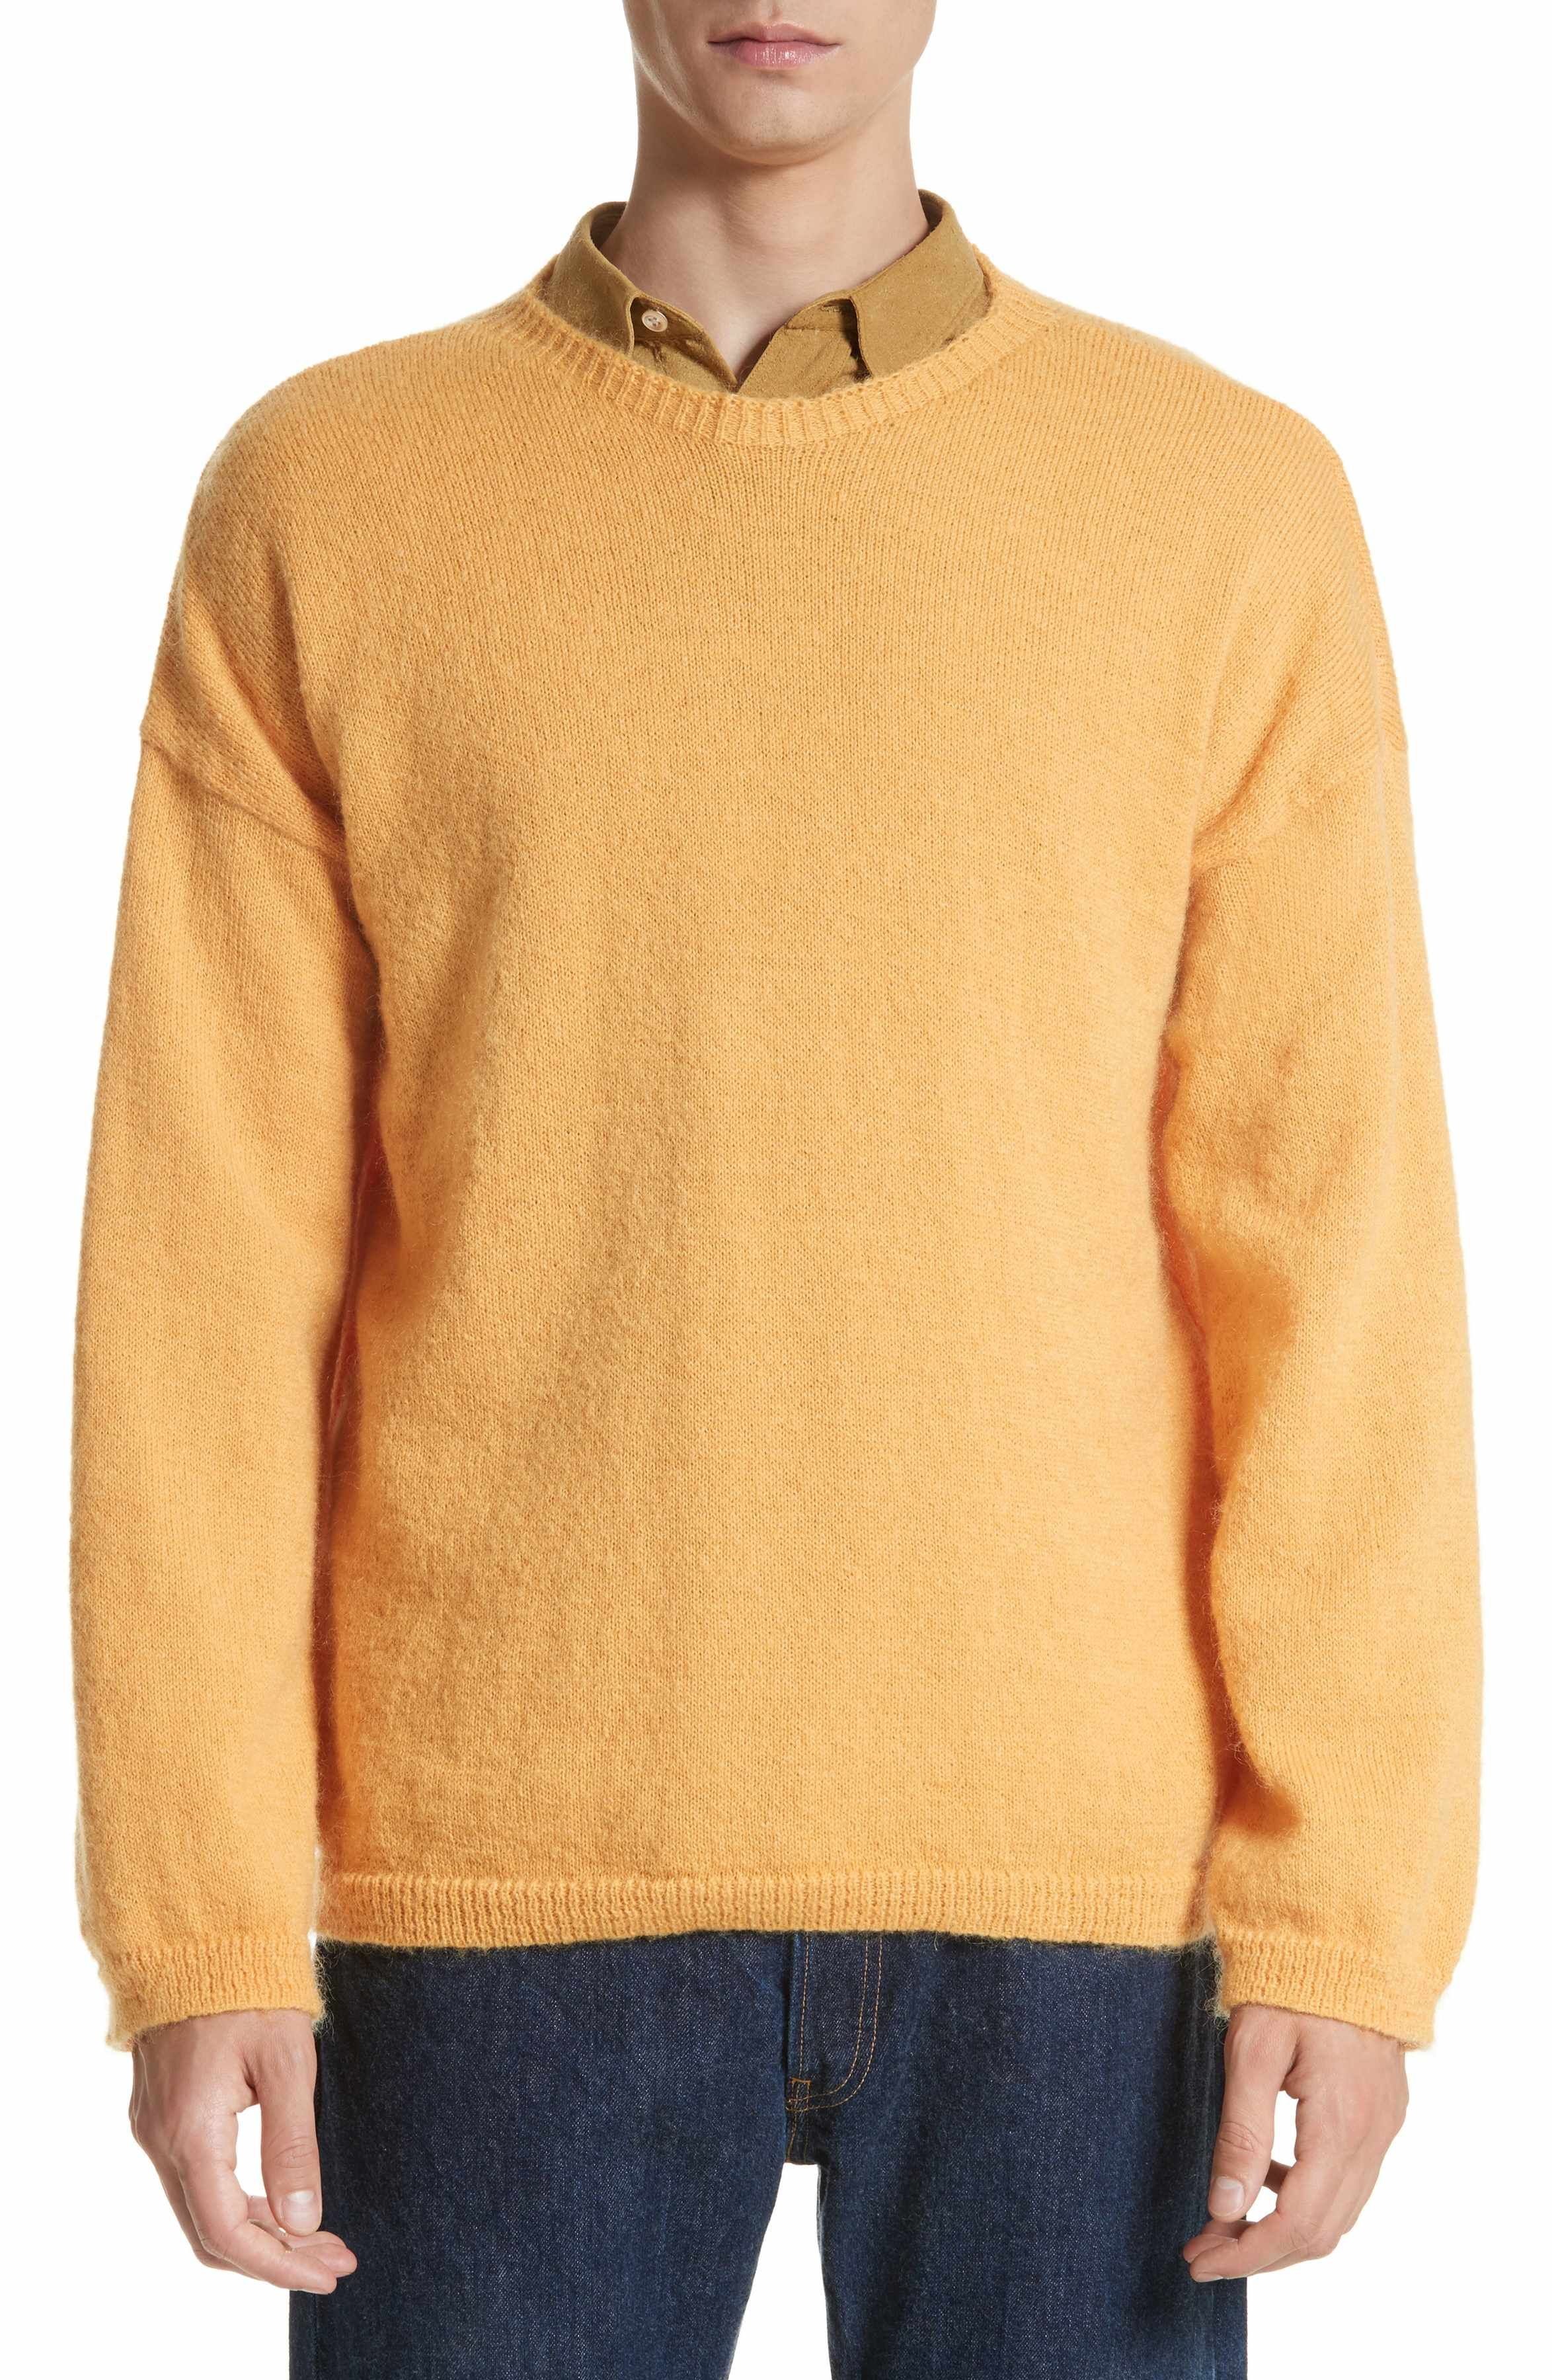 cffa12964ae1 Our Legacy Image Mohair Main Crewneck Blend Sweater 6HqTnW